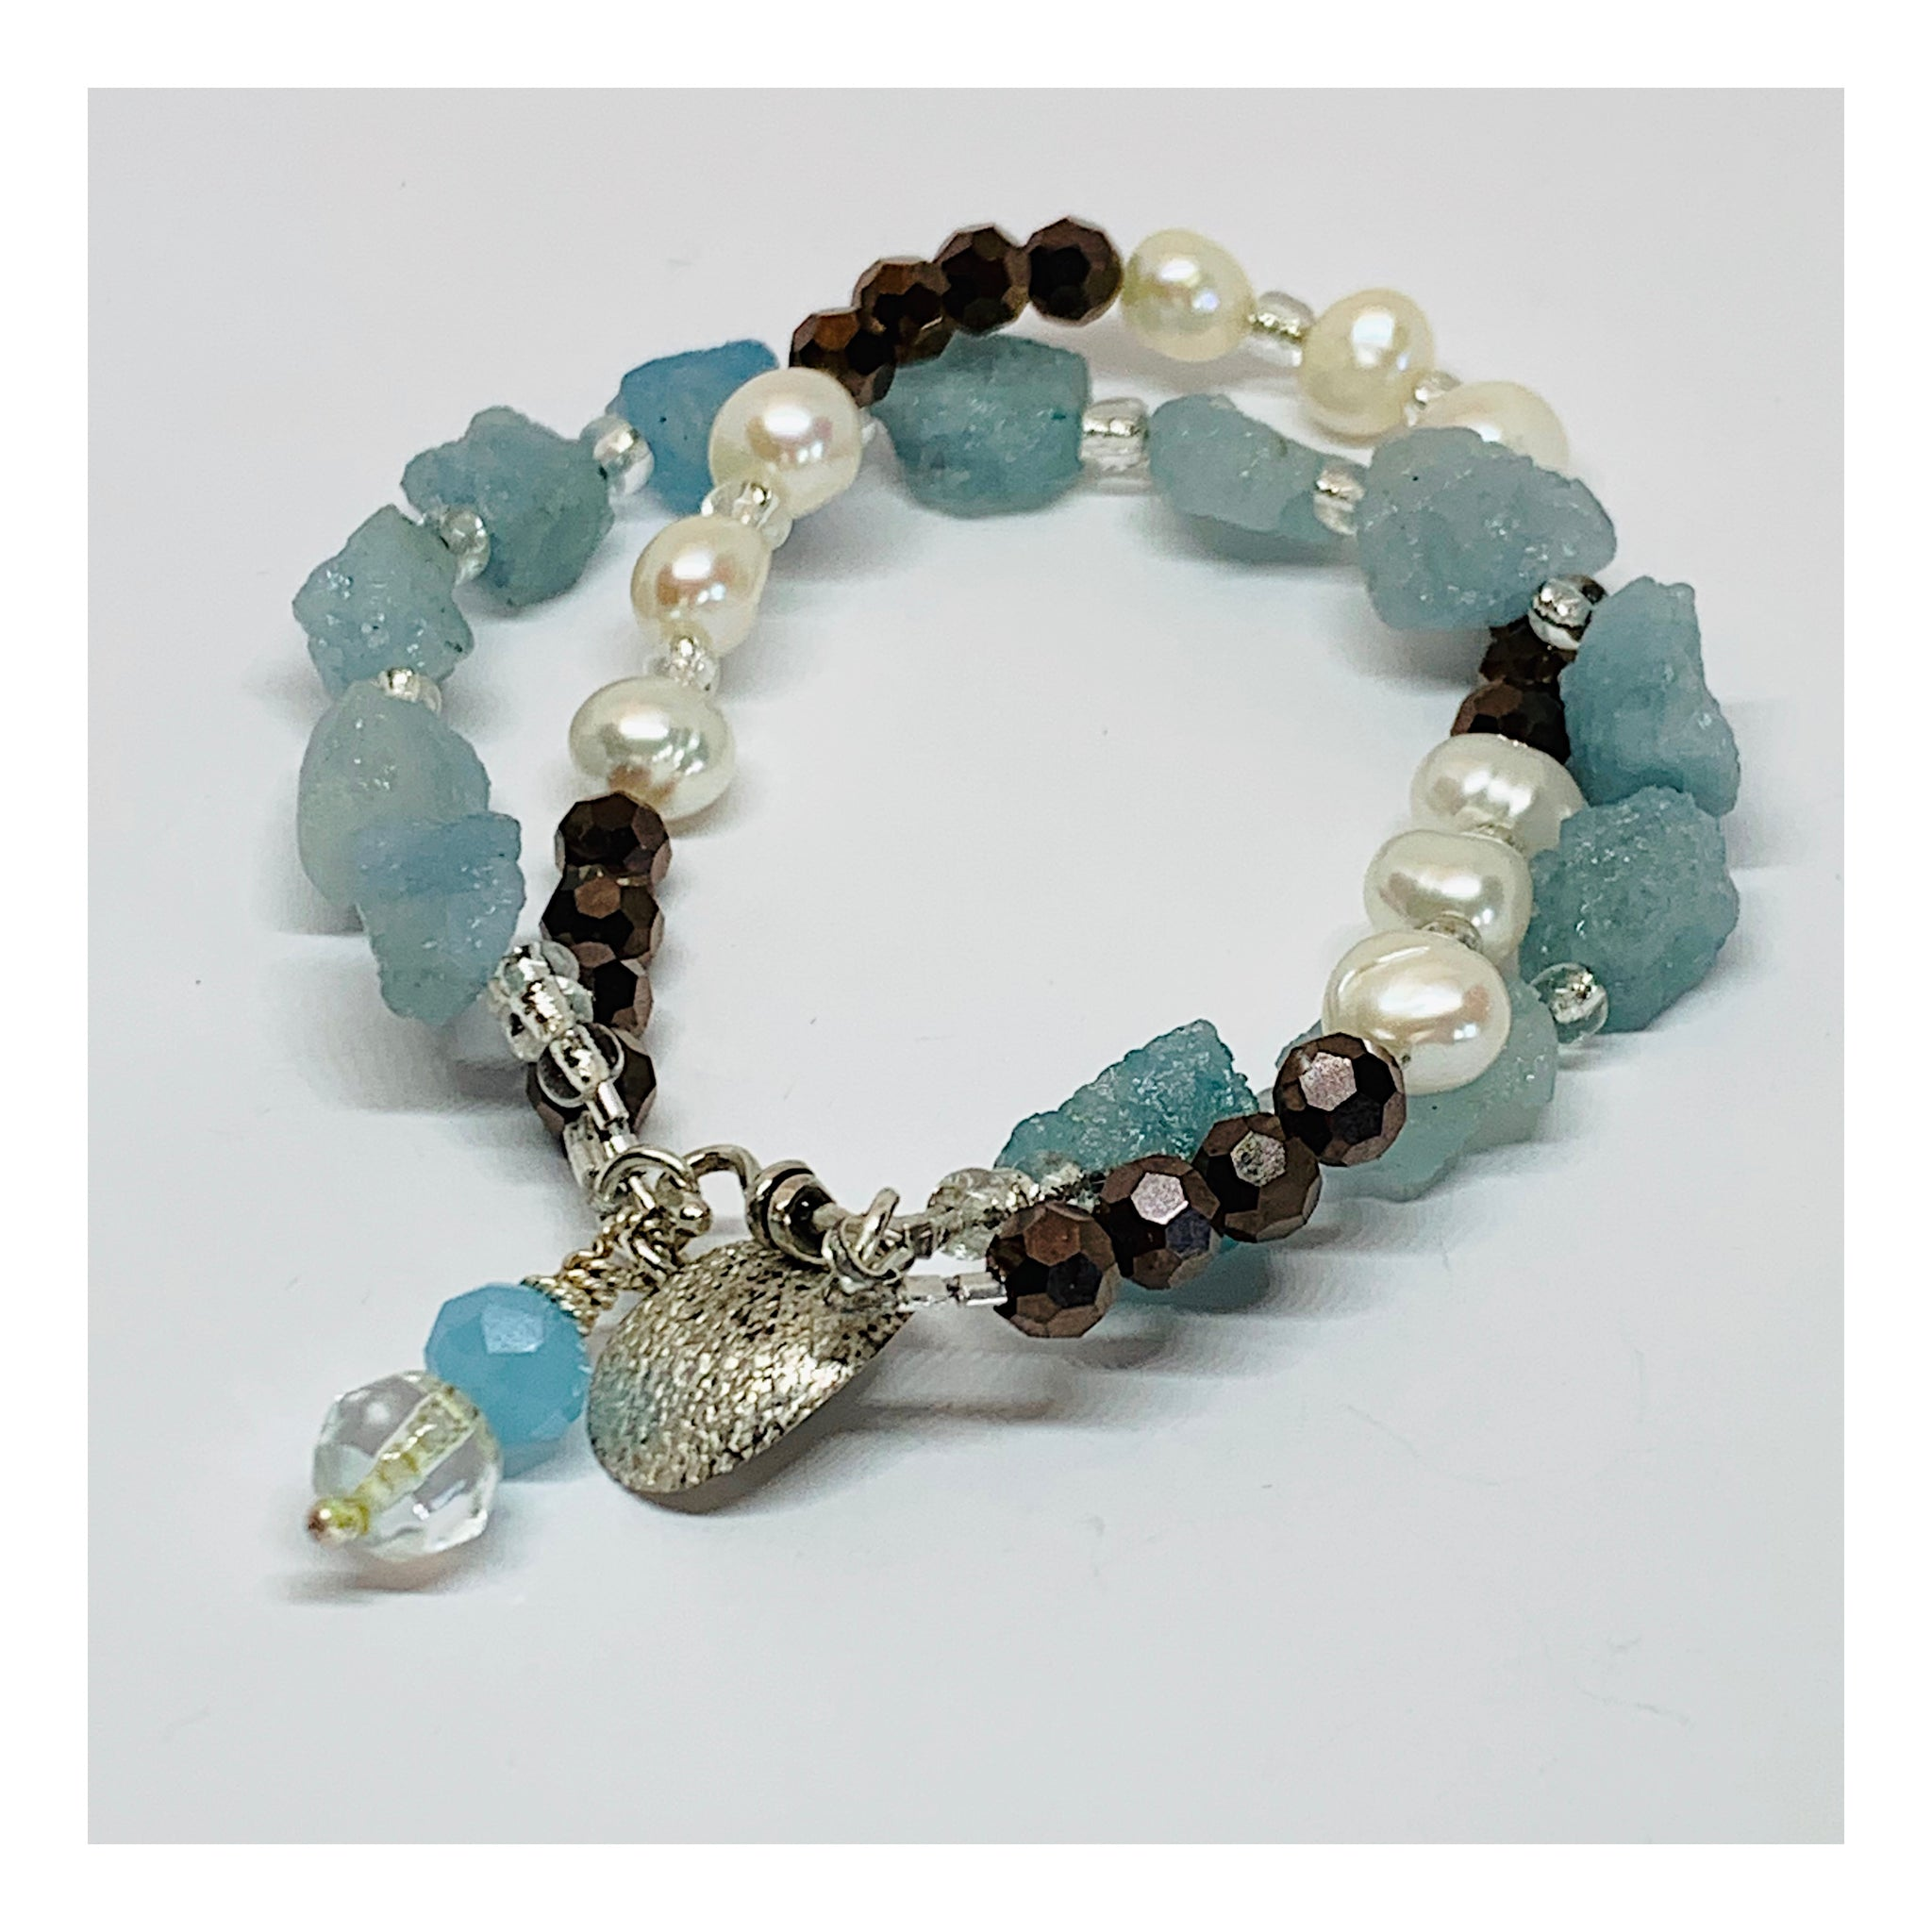 Contemporary Gemstone Bracelet in Blue Aquamarines and White Potato Pearls